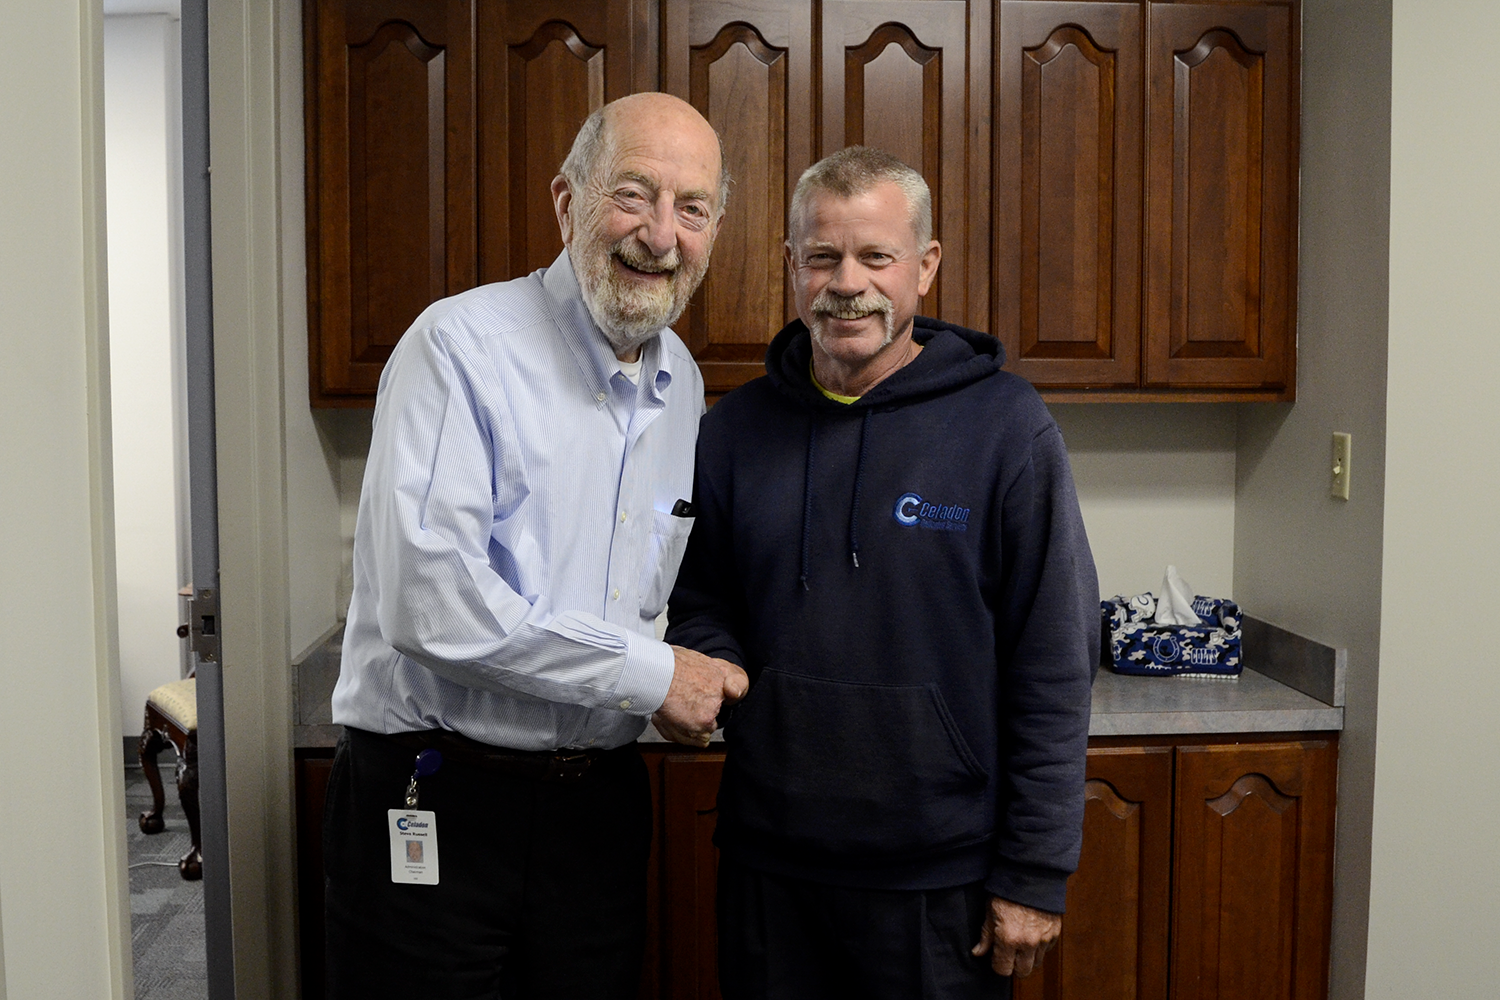 Celadon Founder and Chairman of the Board, Steve Russell, shakes hands with 30-year Celadon driver, Jerry Irvine.